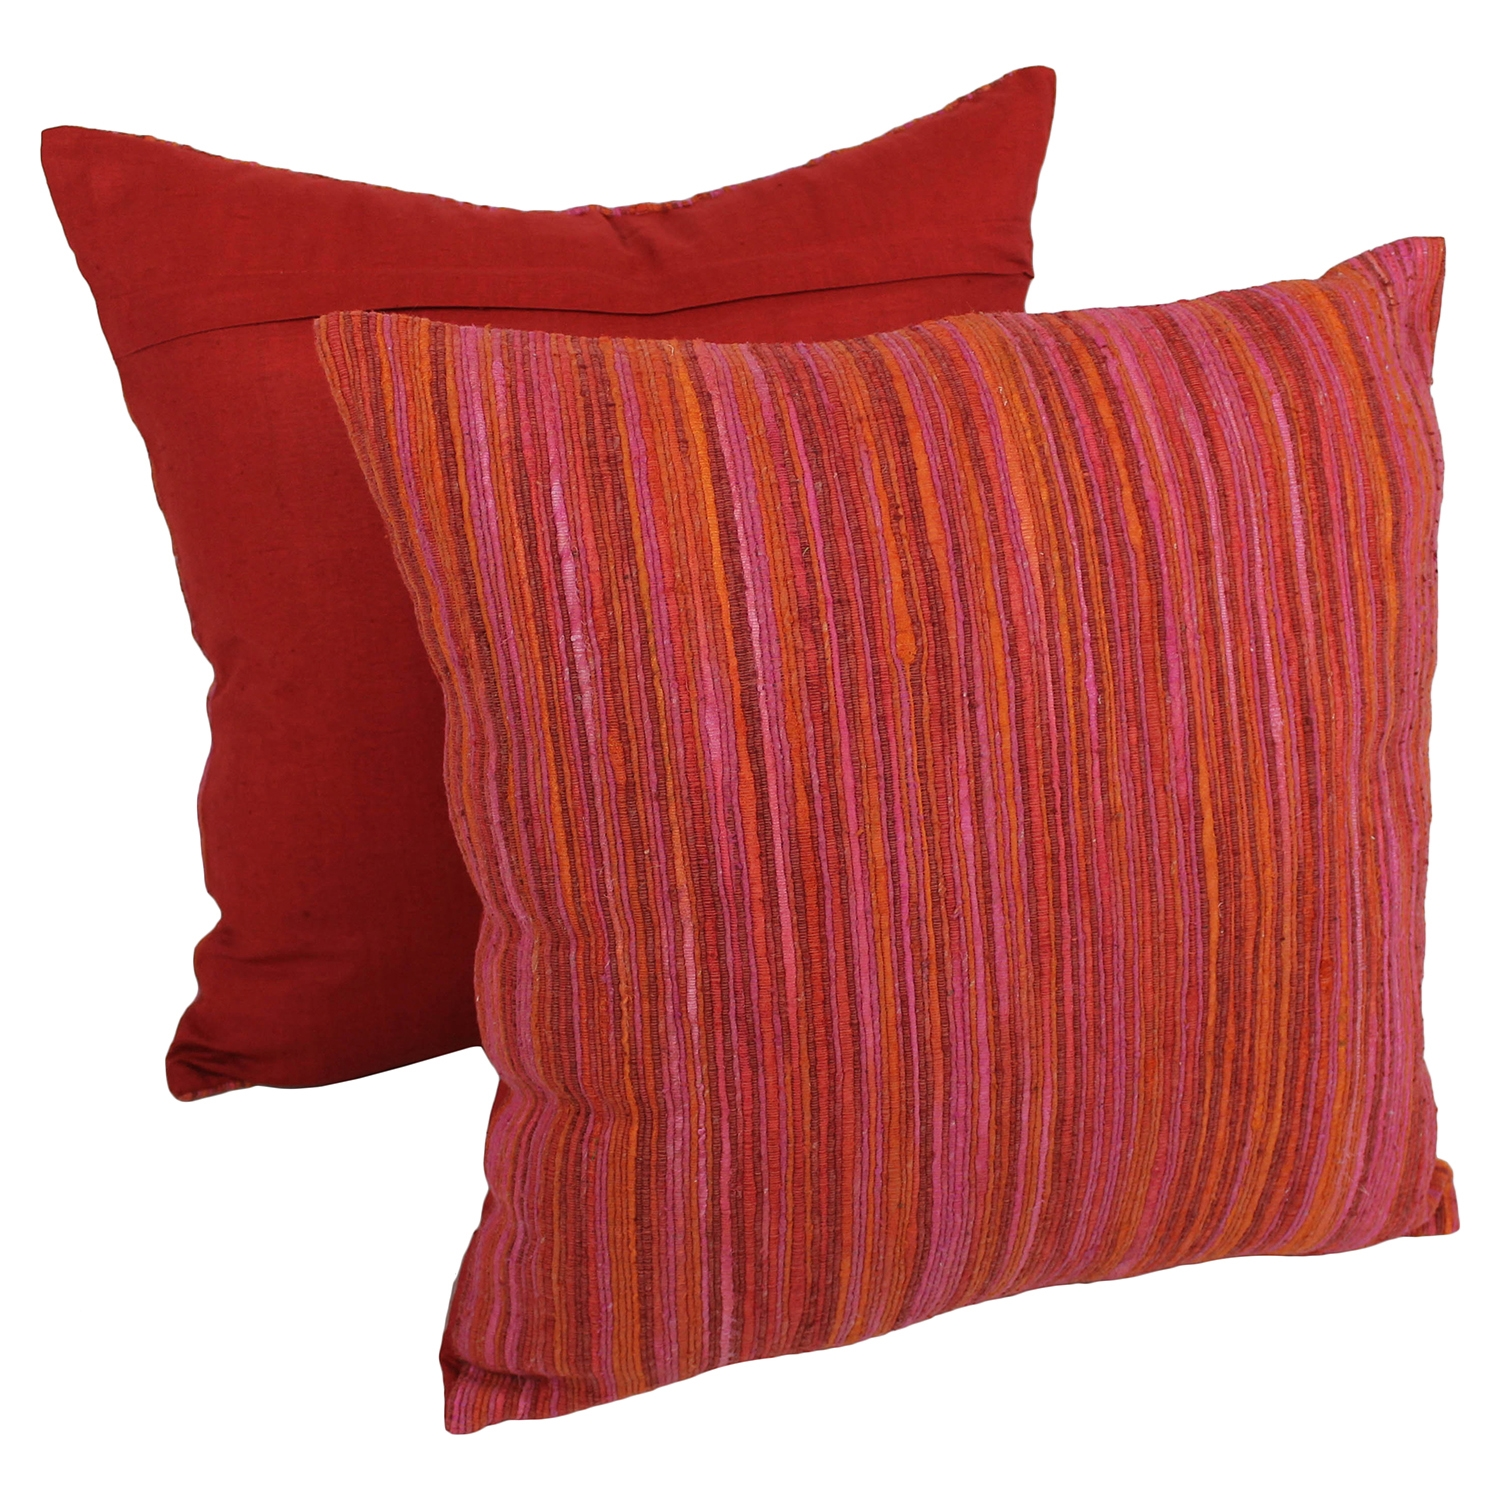 "20"" Throw Pillows in Red Palette with Rainbow Yarn Threading (Set of 2)"